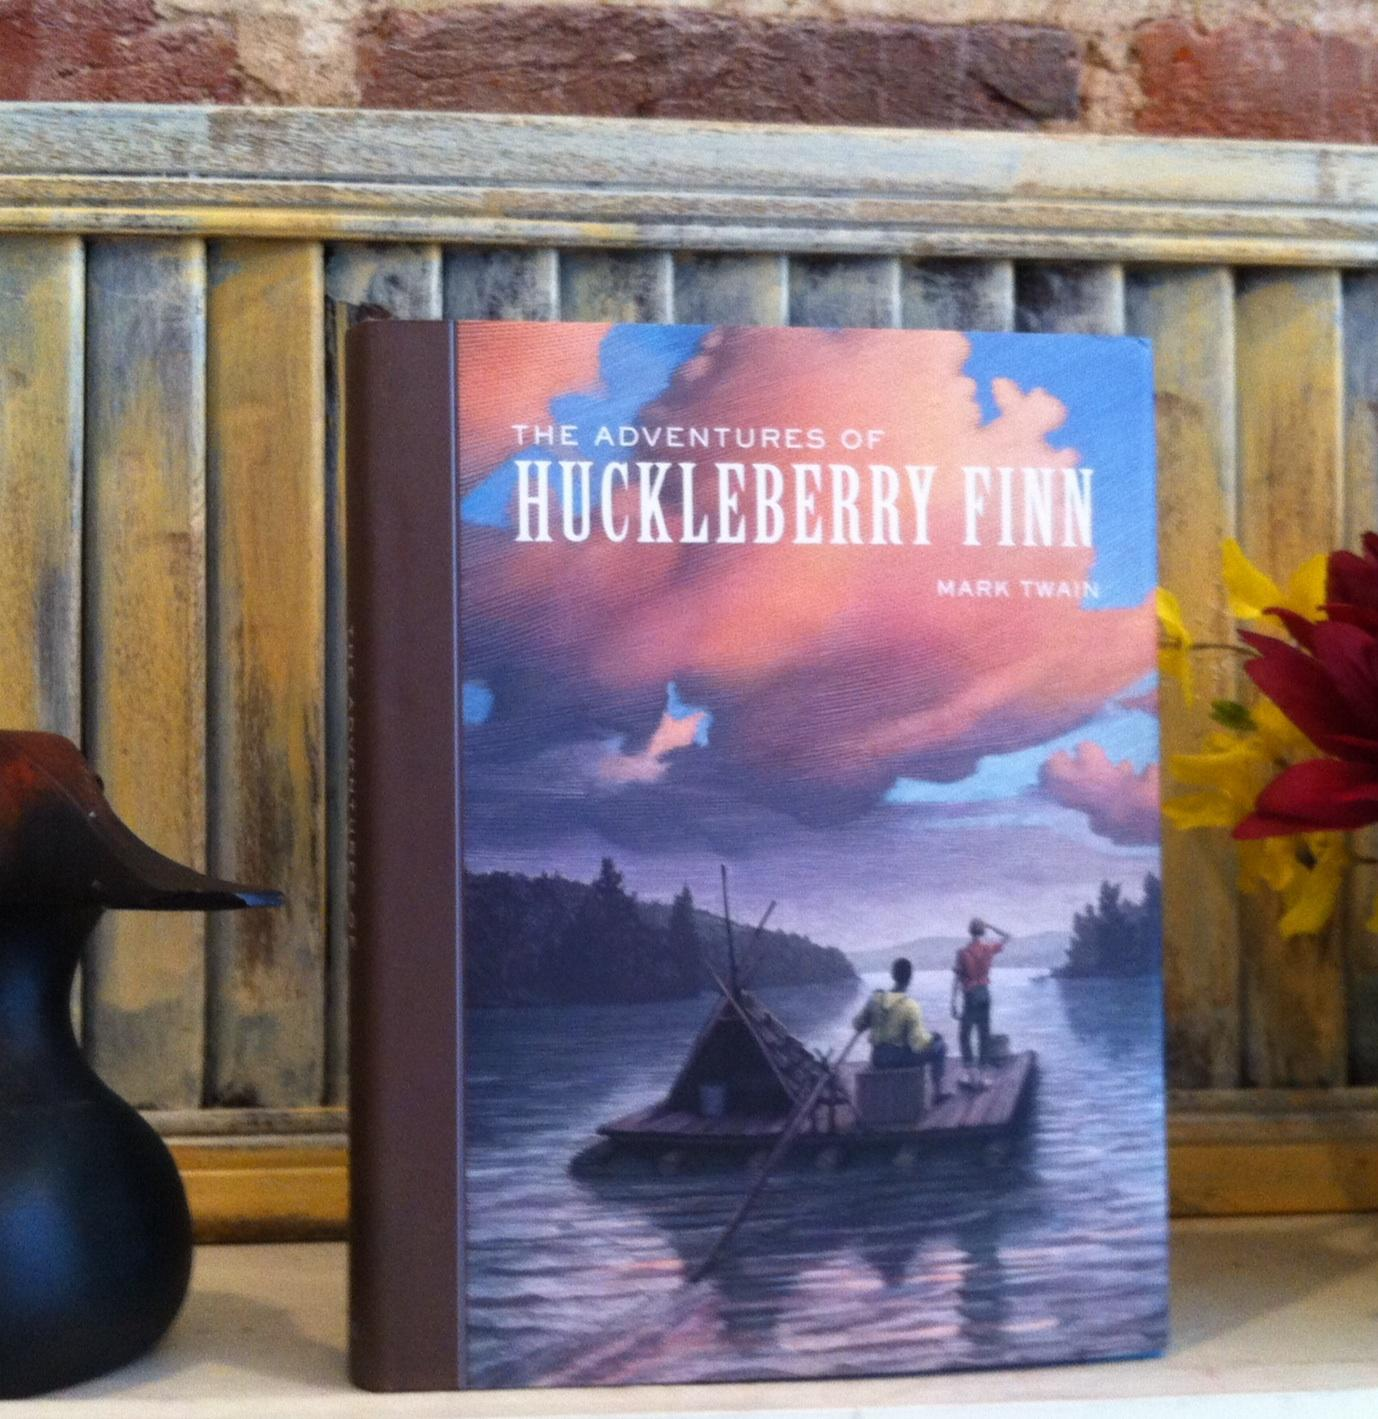 adventures of huckleberry finn dialectical journal essay